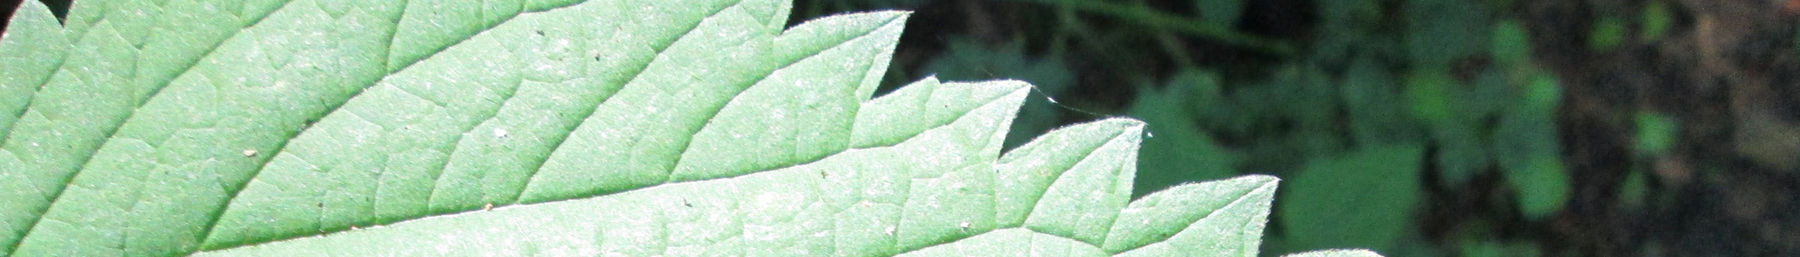 Wikivoyage page banner stinging nettle.jpg